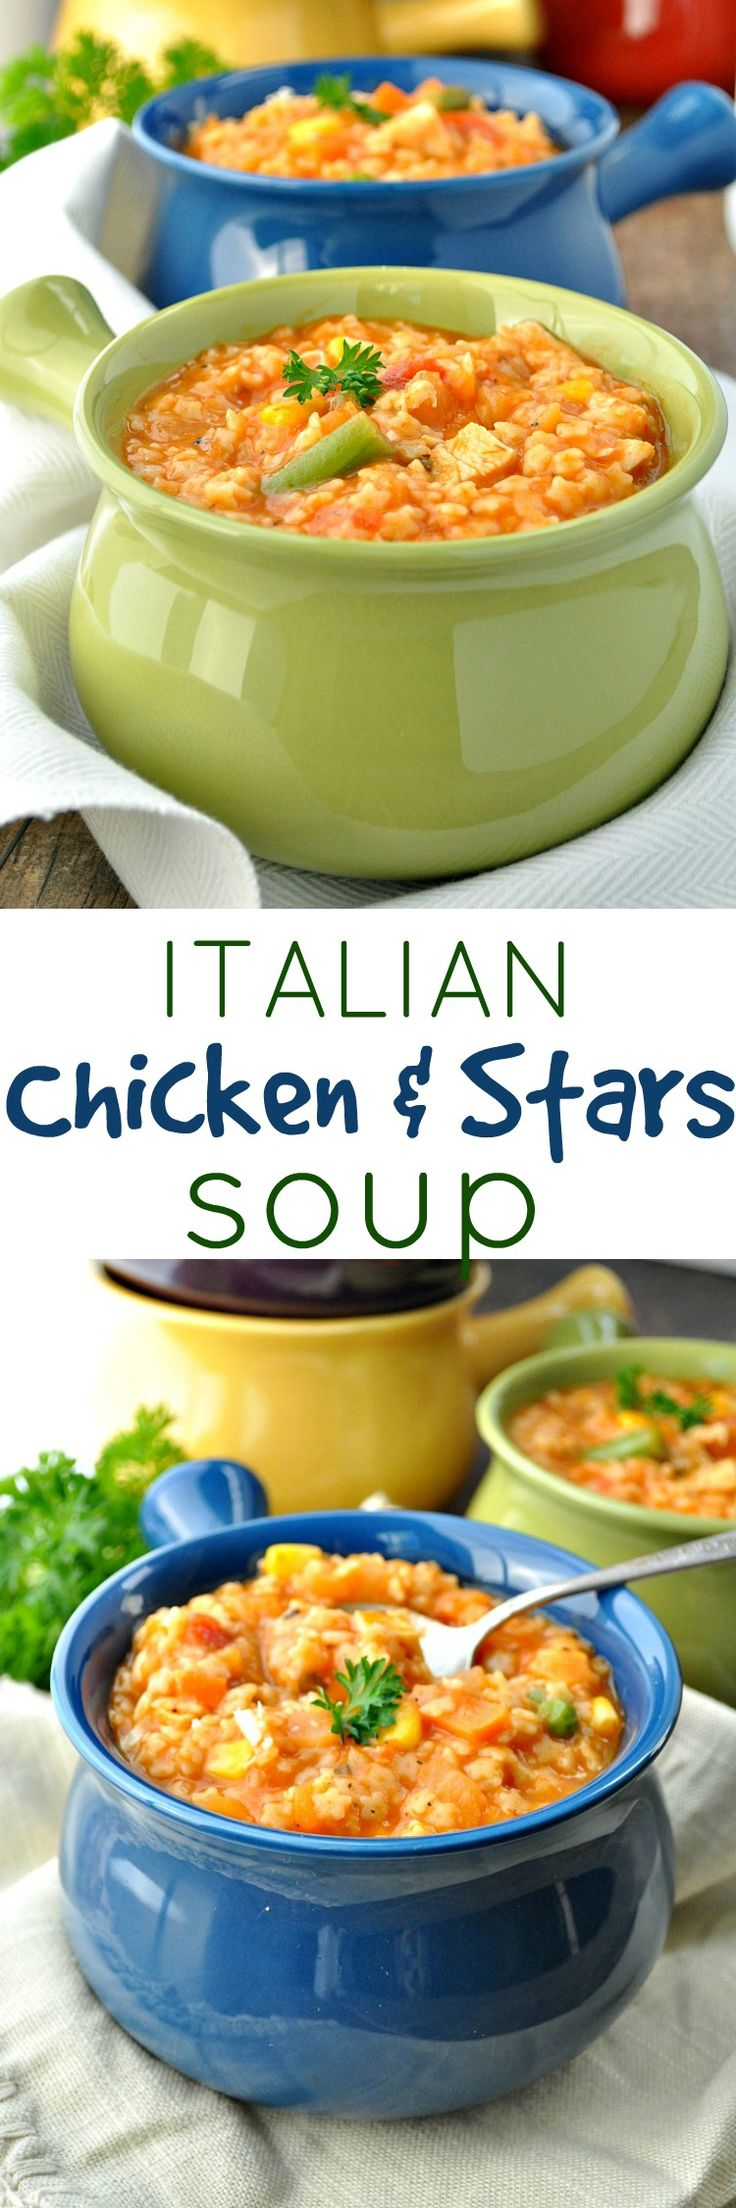 Only 5 minutes of prep for this healthy Italian Chicken & Stars soup recipe! It's a one-pot meal that's easy, fast, and very kid-friendly!